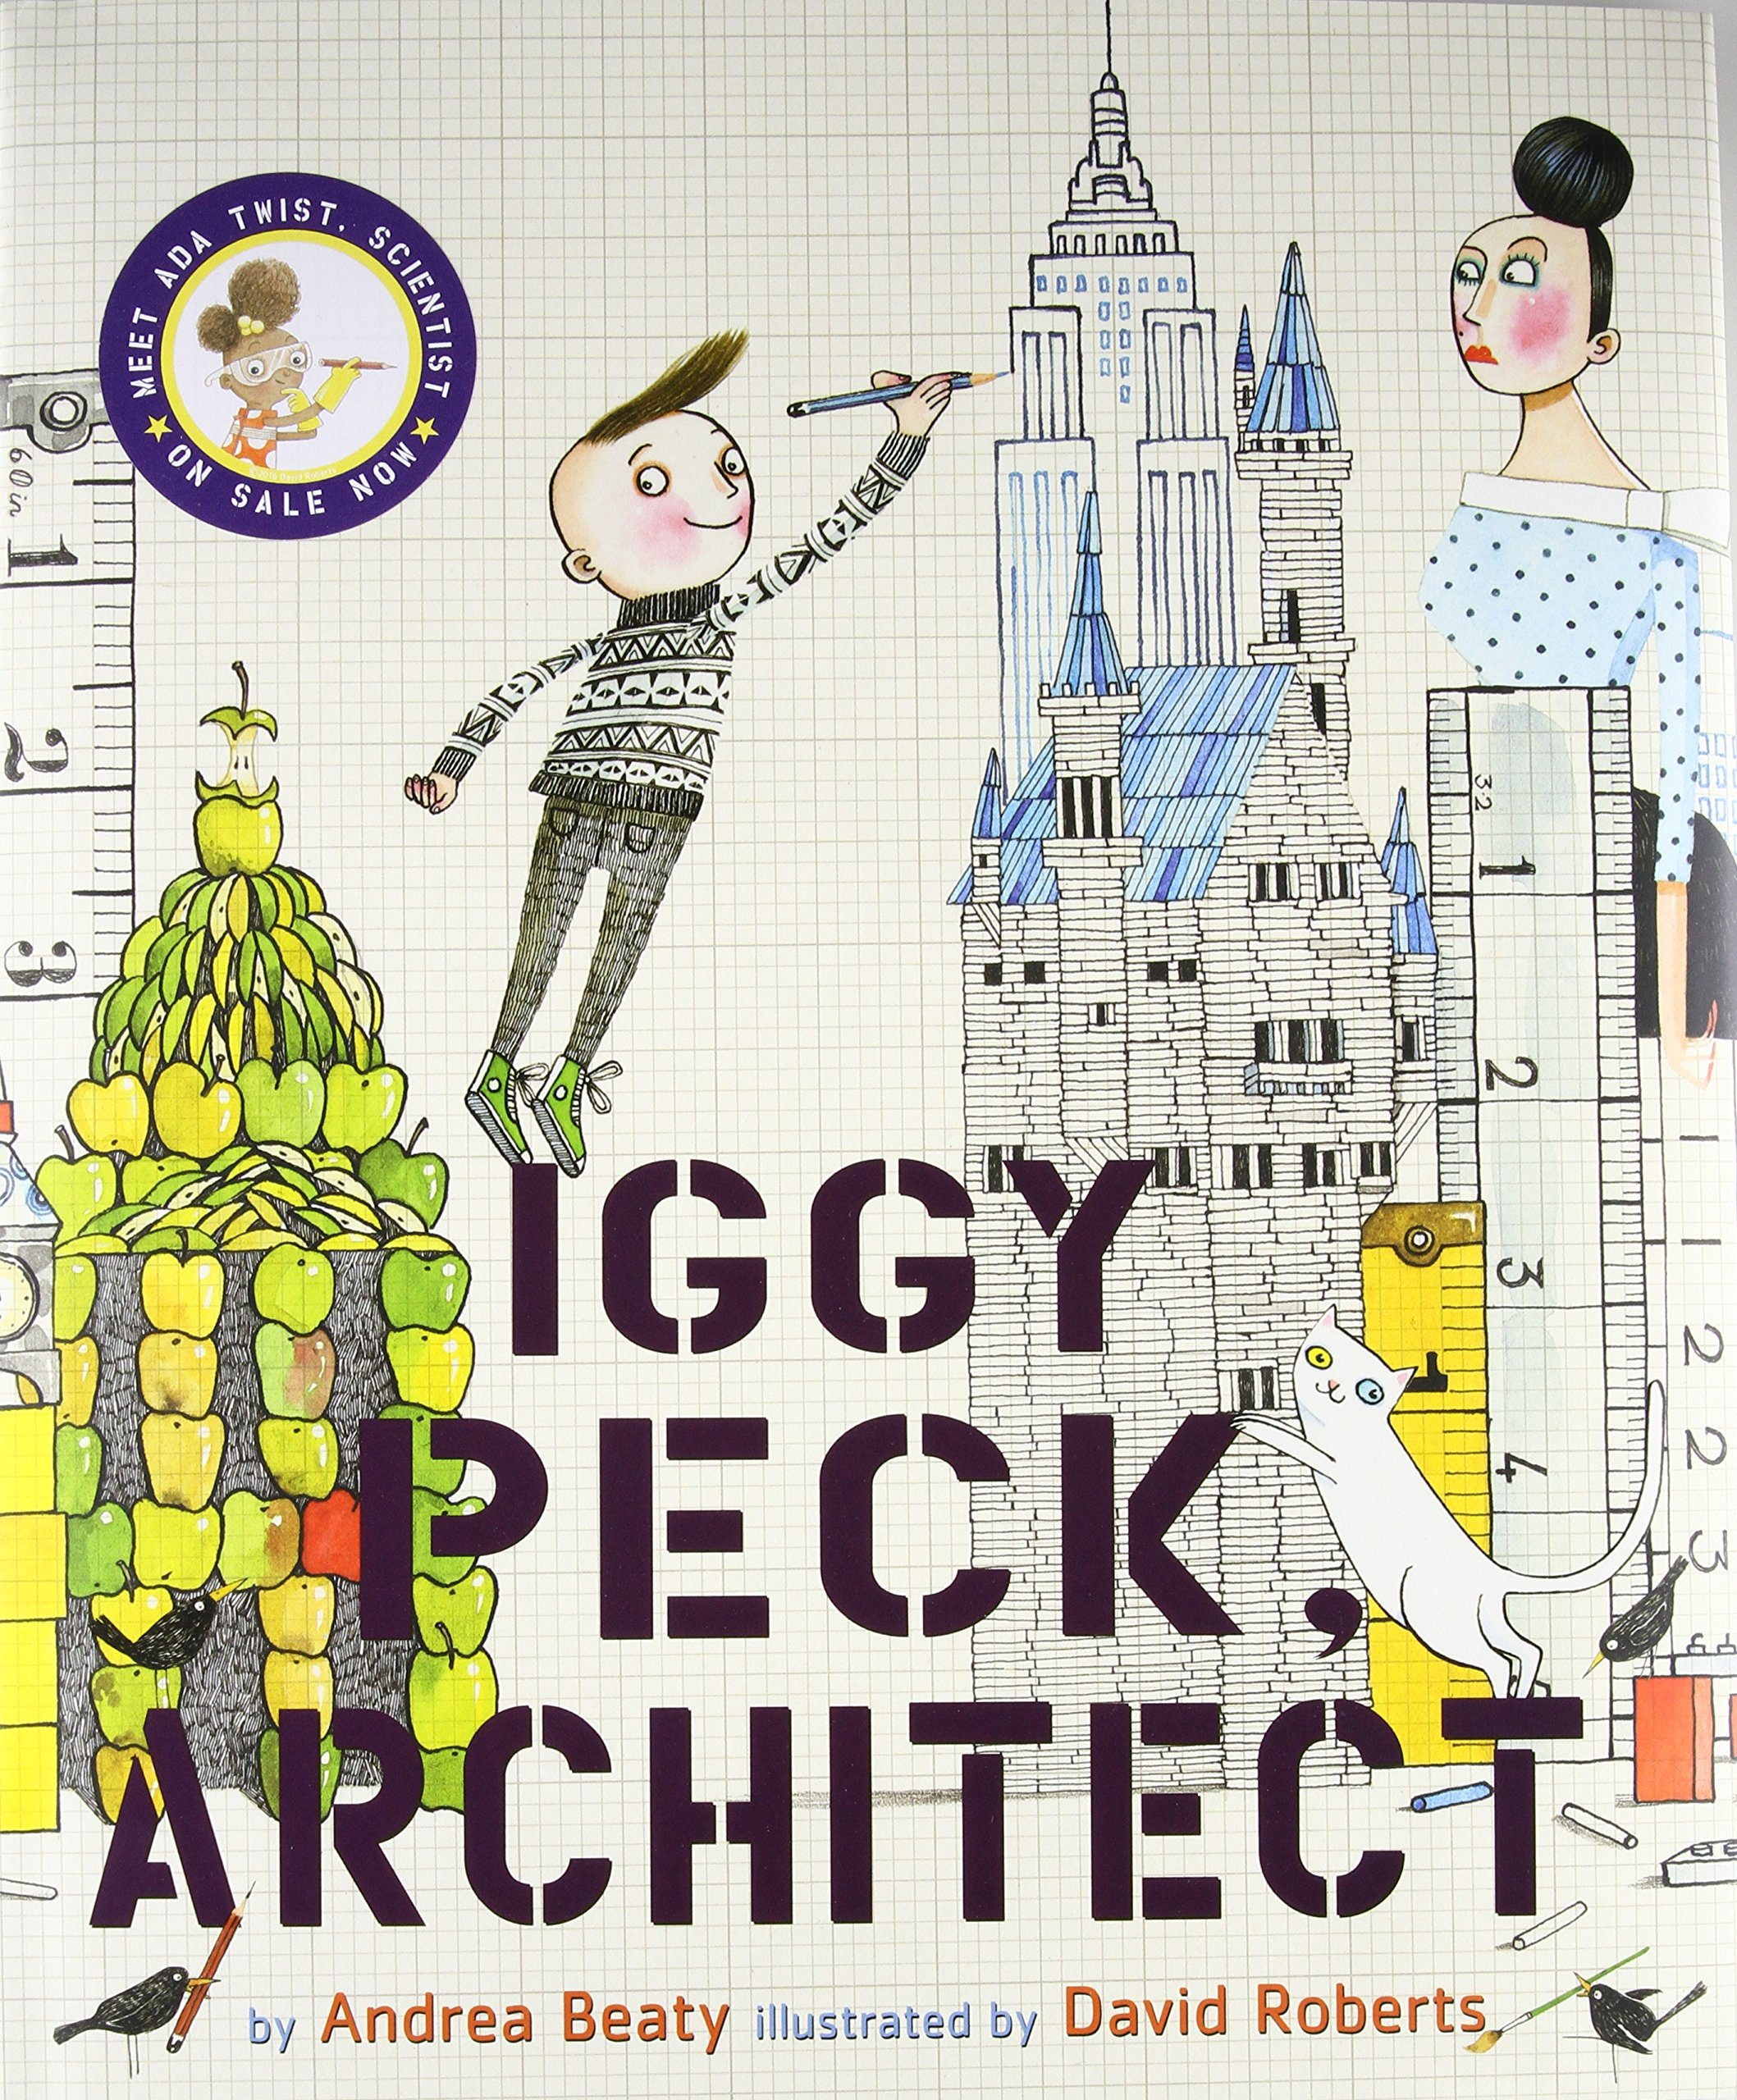 Image result for Iggy peck architect""